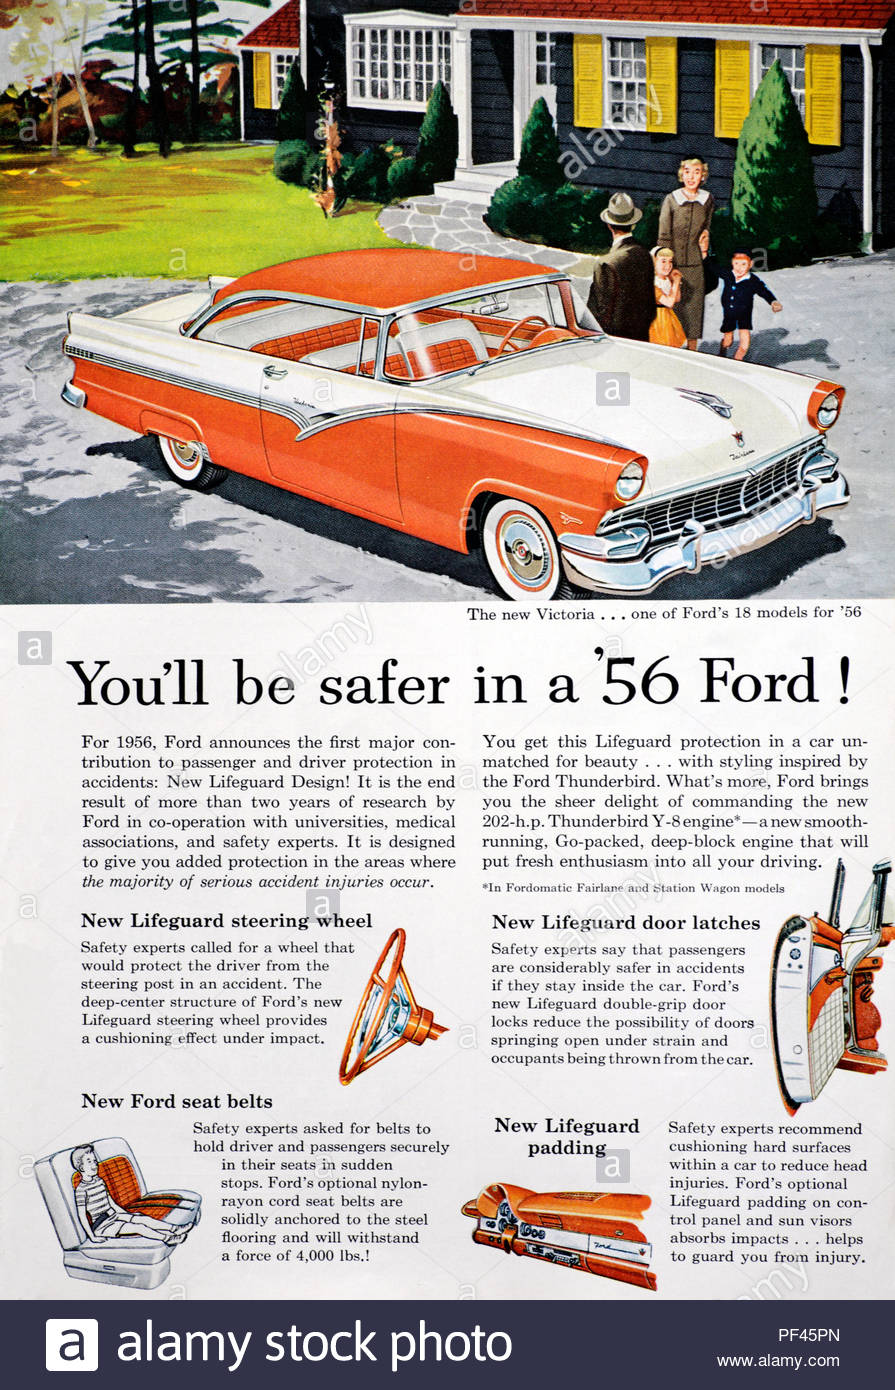 Vintage advertising for the Ford Fairlane Victoria 1956 - Stock Image